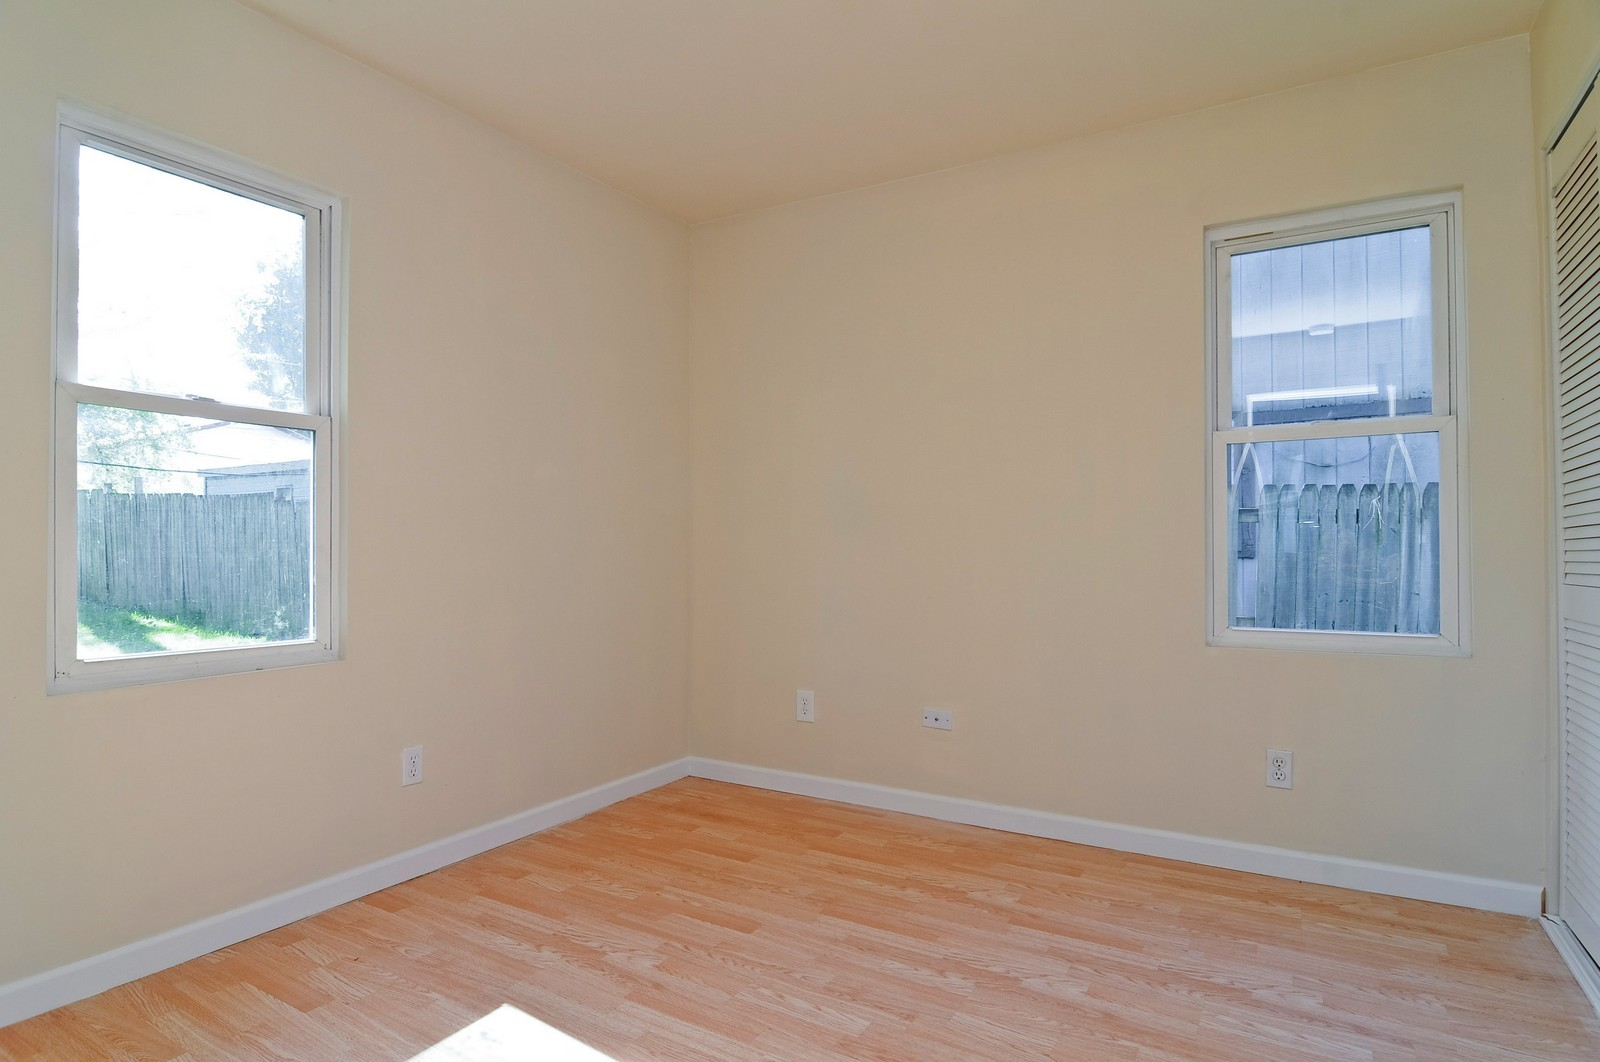 Real Estate Photography - 321 N Bellevue, Round Lake Park, IL, 60073 - Bedroom